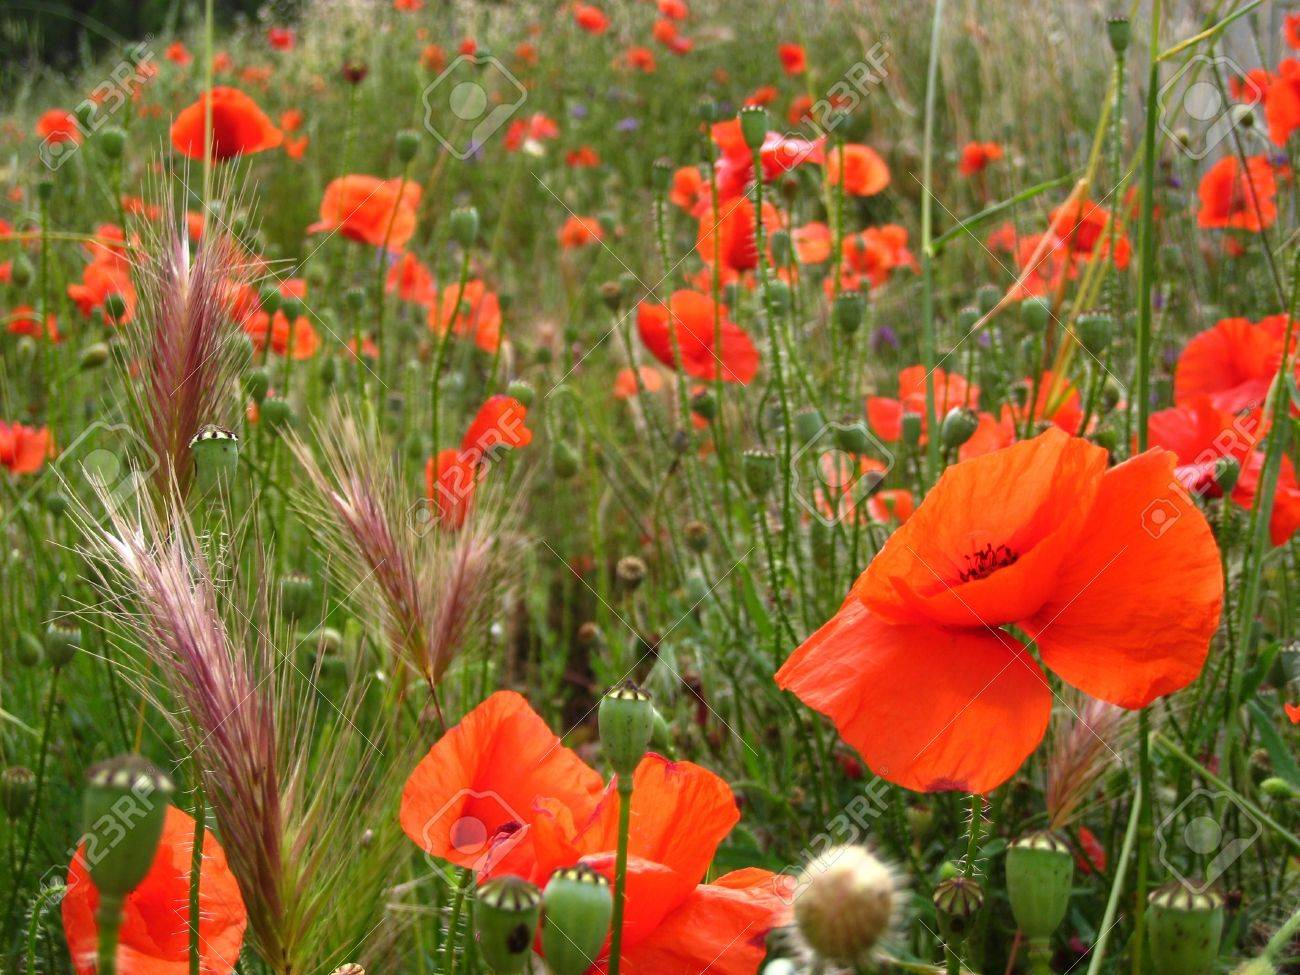 Field Full Of Poppies Flowers And Spikes Stock Photo Picture And